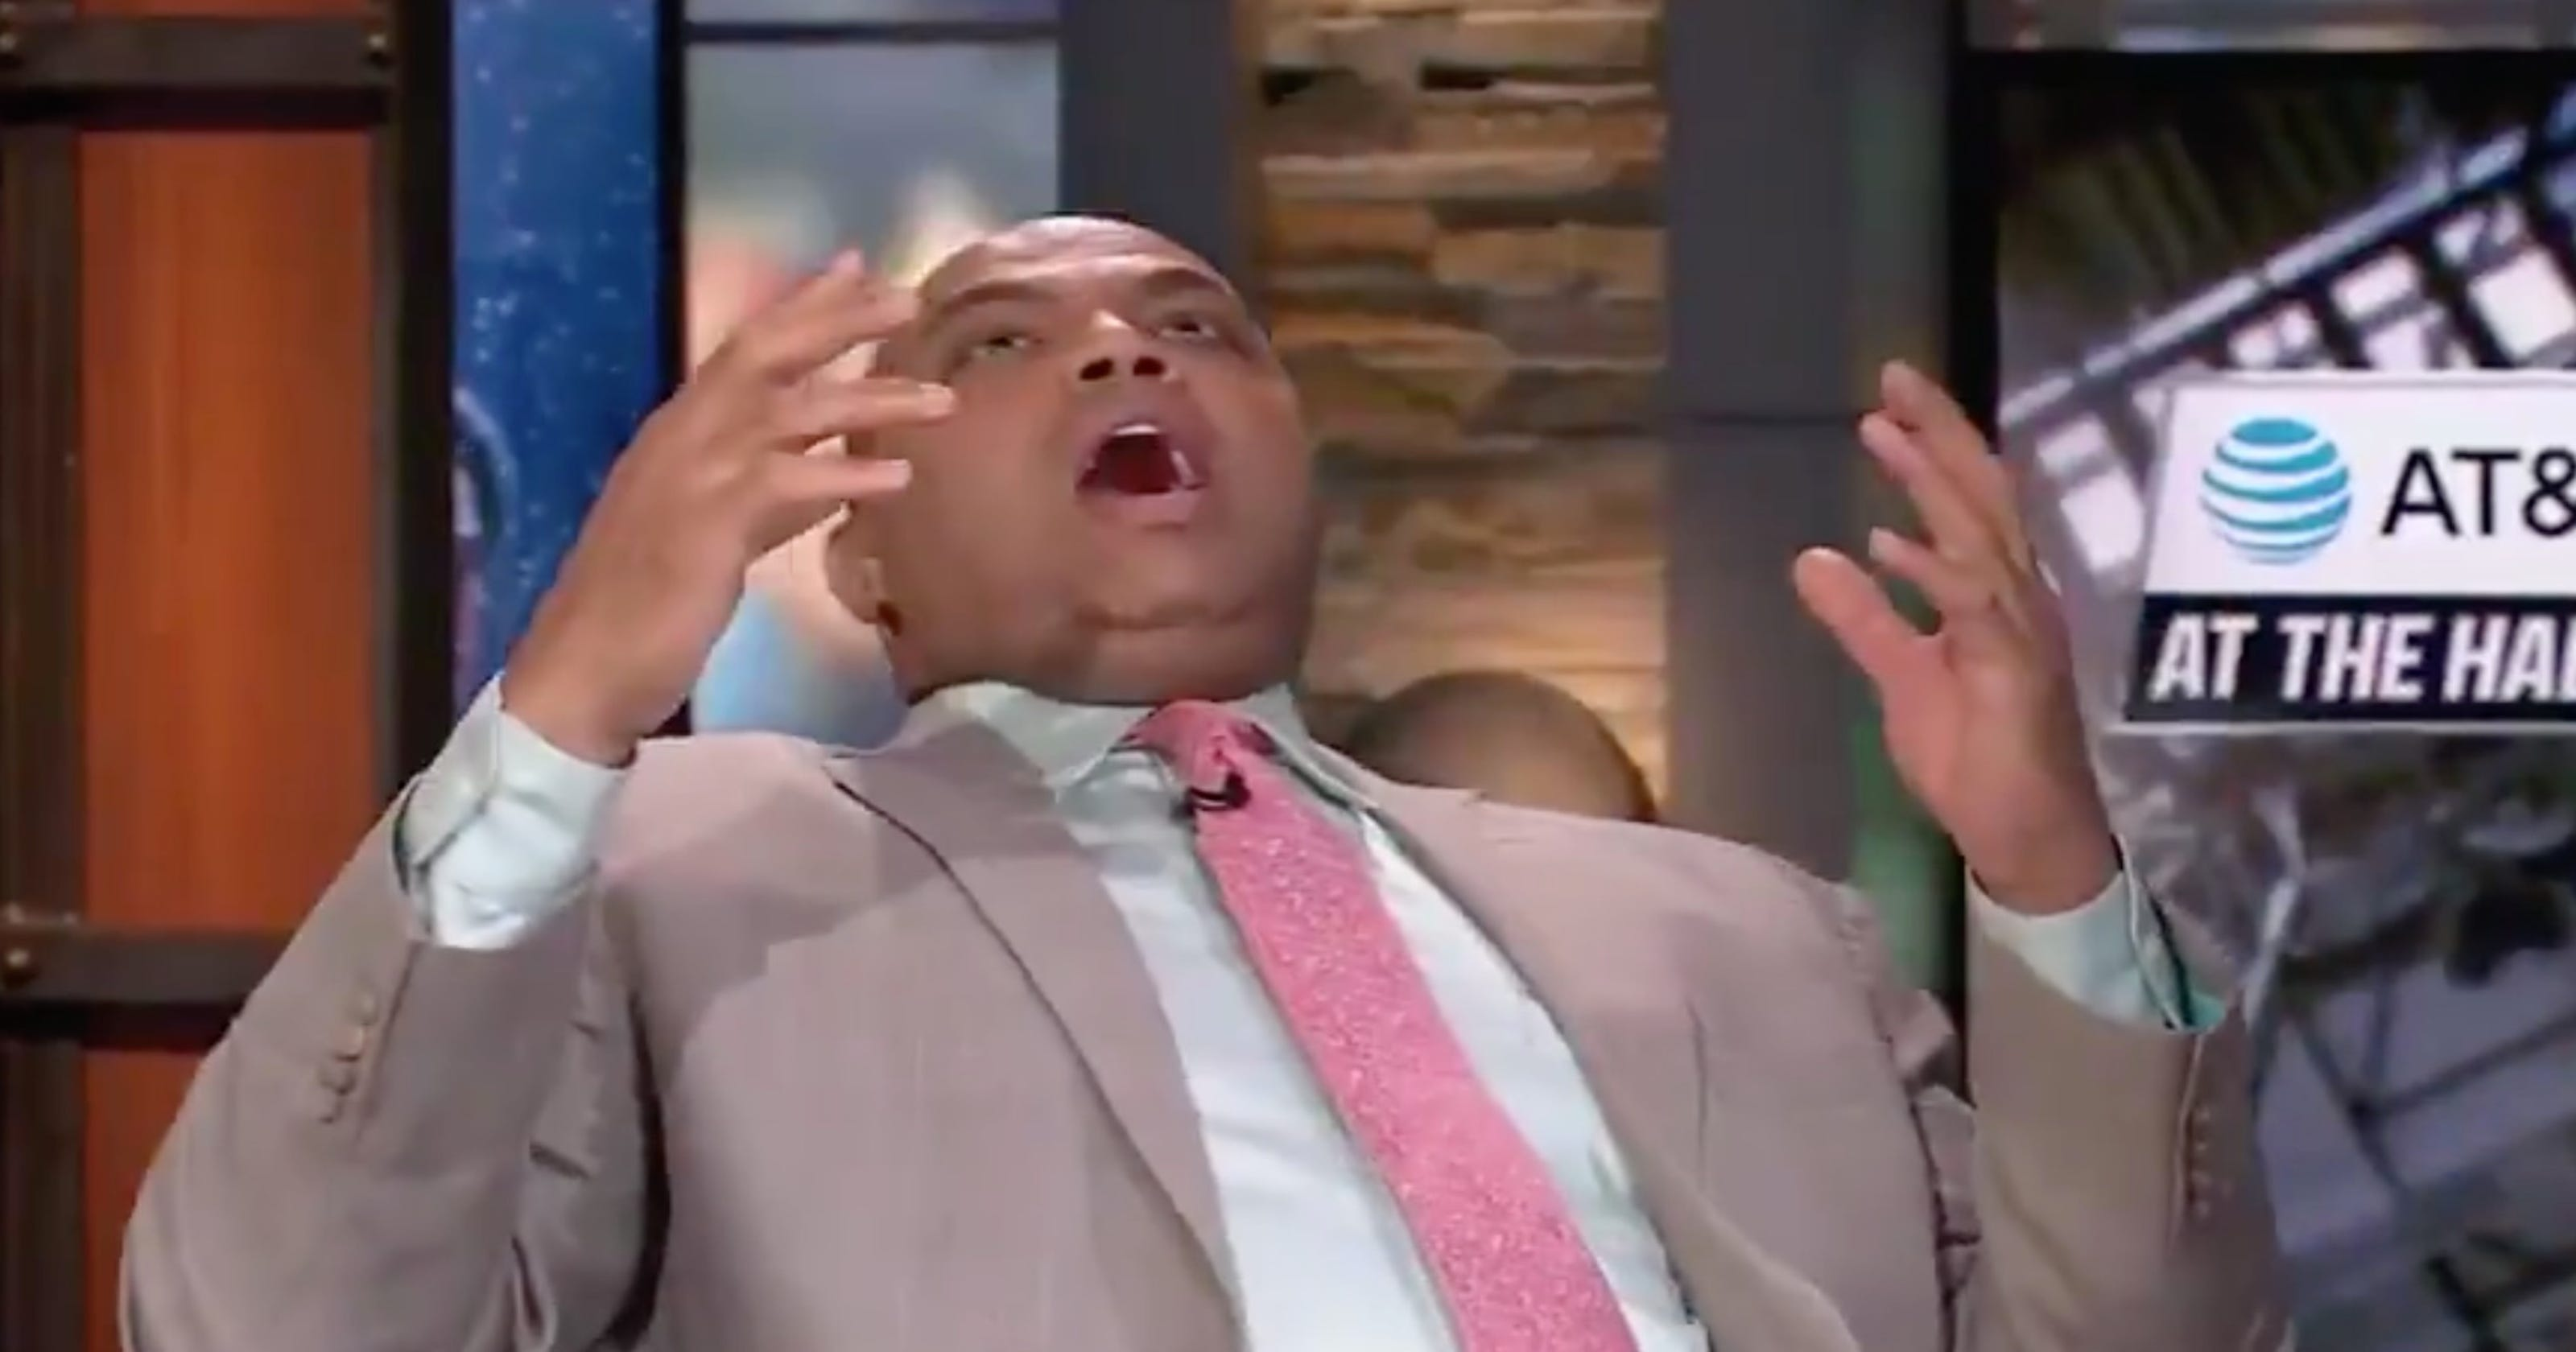 Charles Barkley was freaking out during the Auburn-New Mexico State game